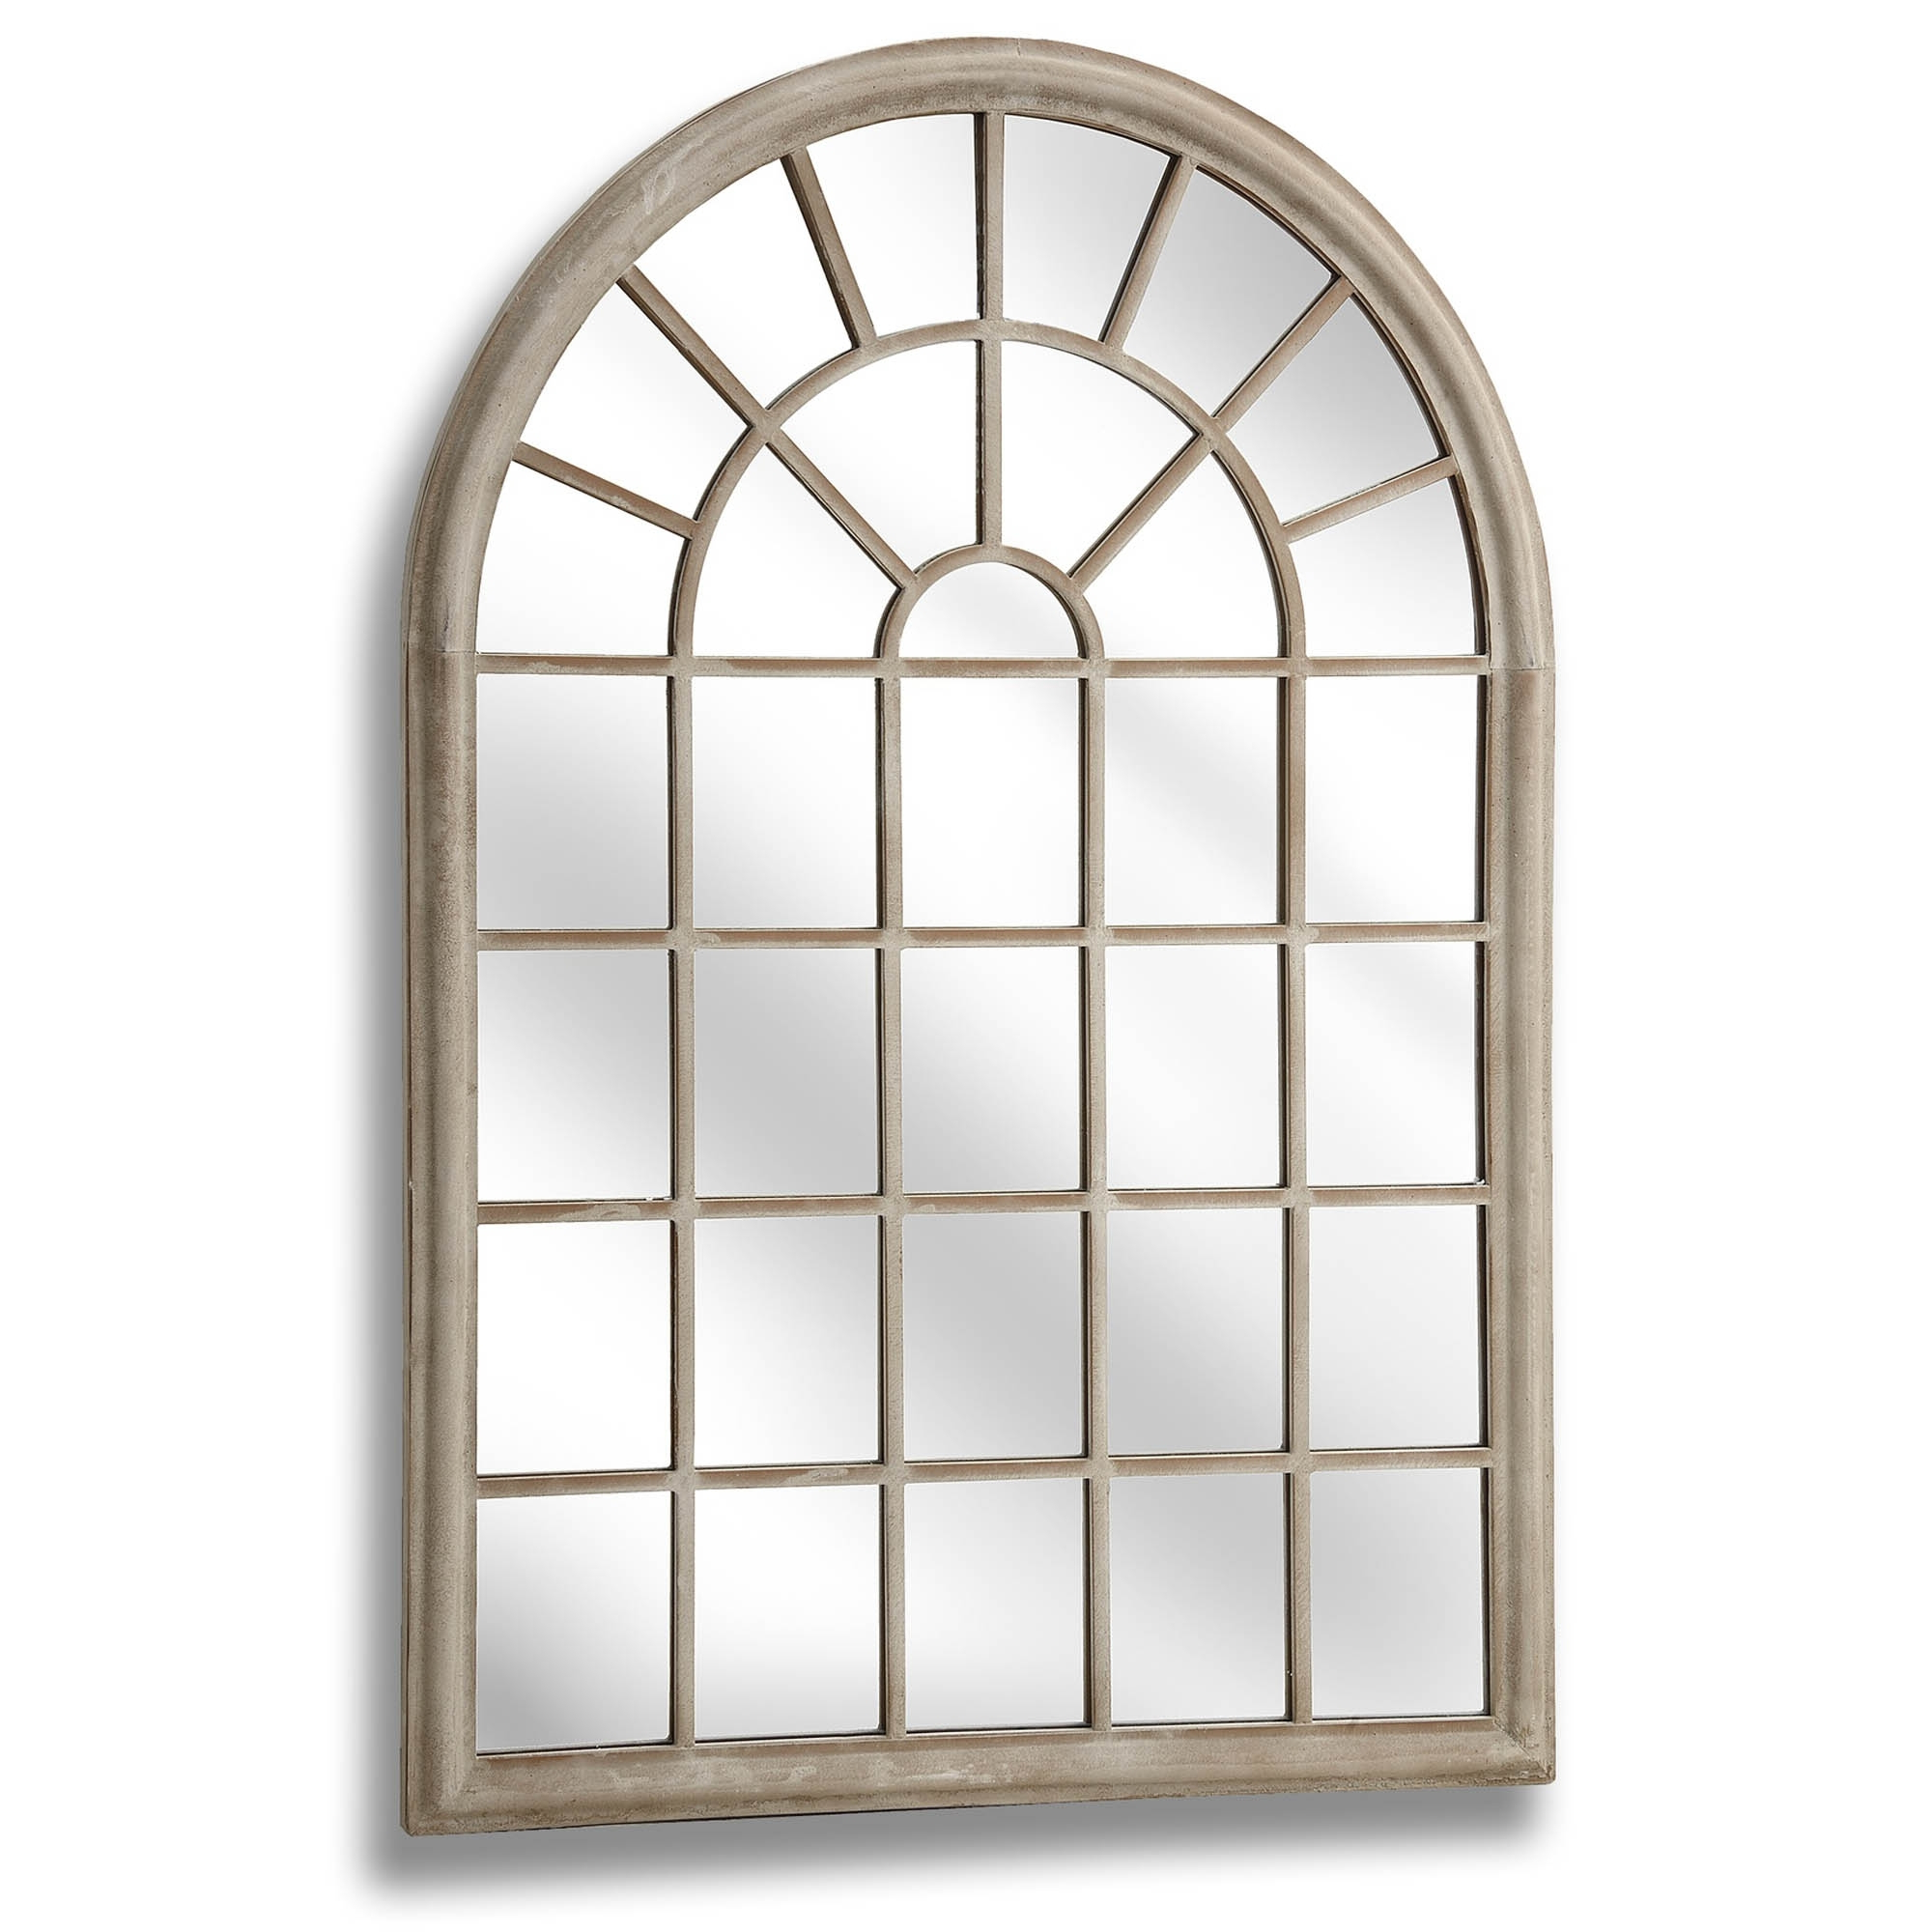 Famous Arch Wall Mirrors Pertaining To Large Rustic Arched Window Wall Mirror (View 9 of 20)